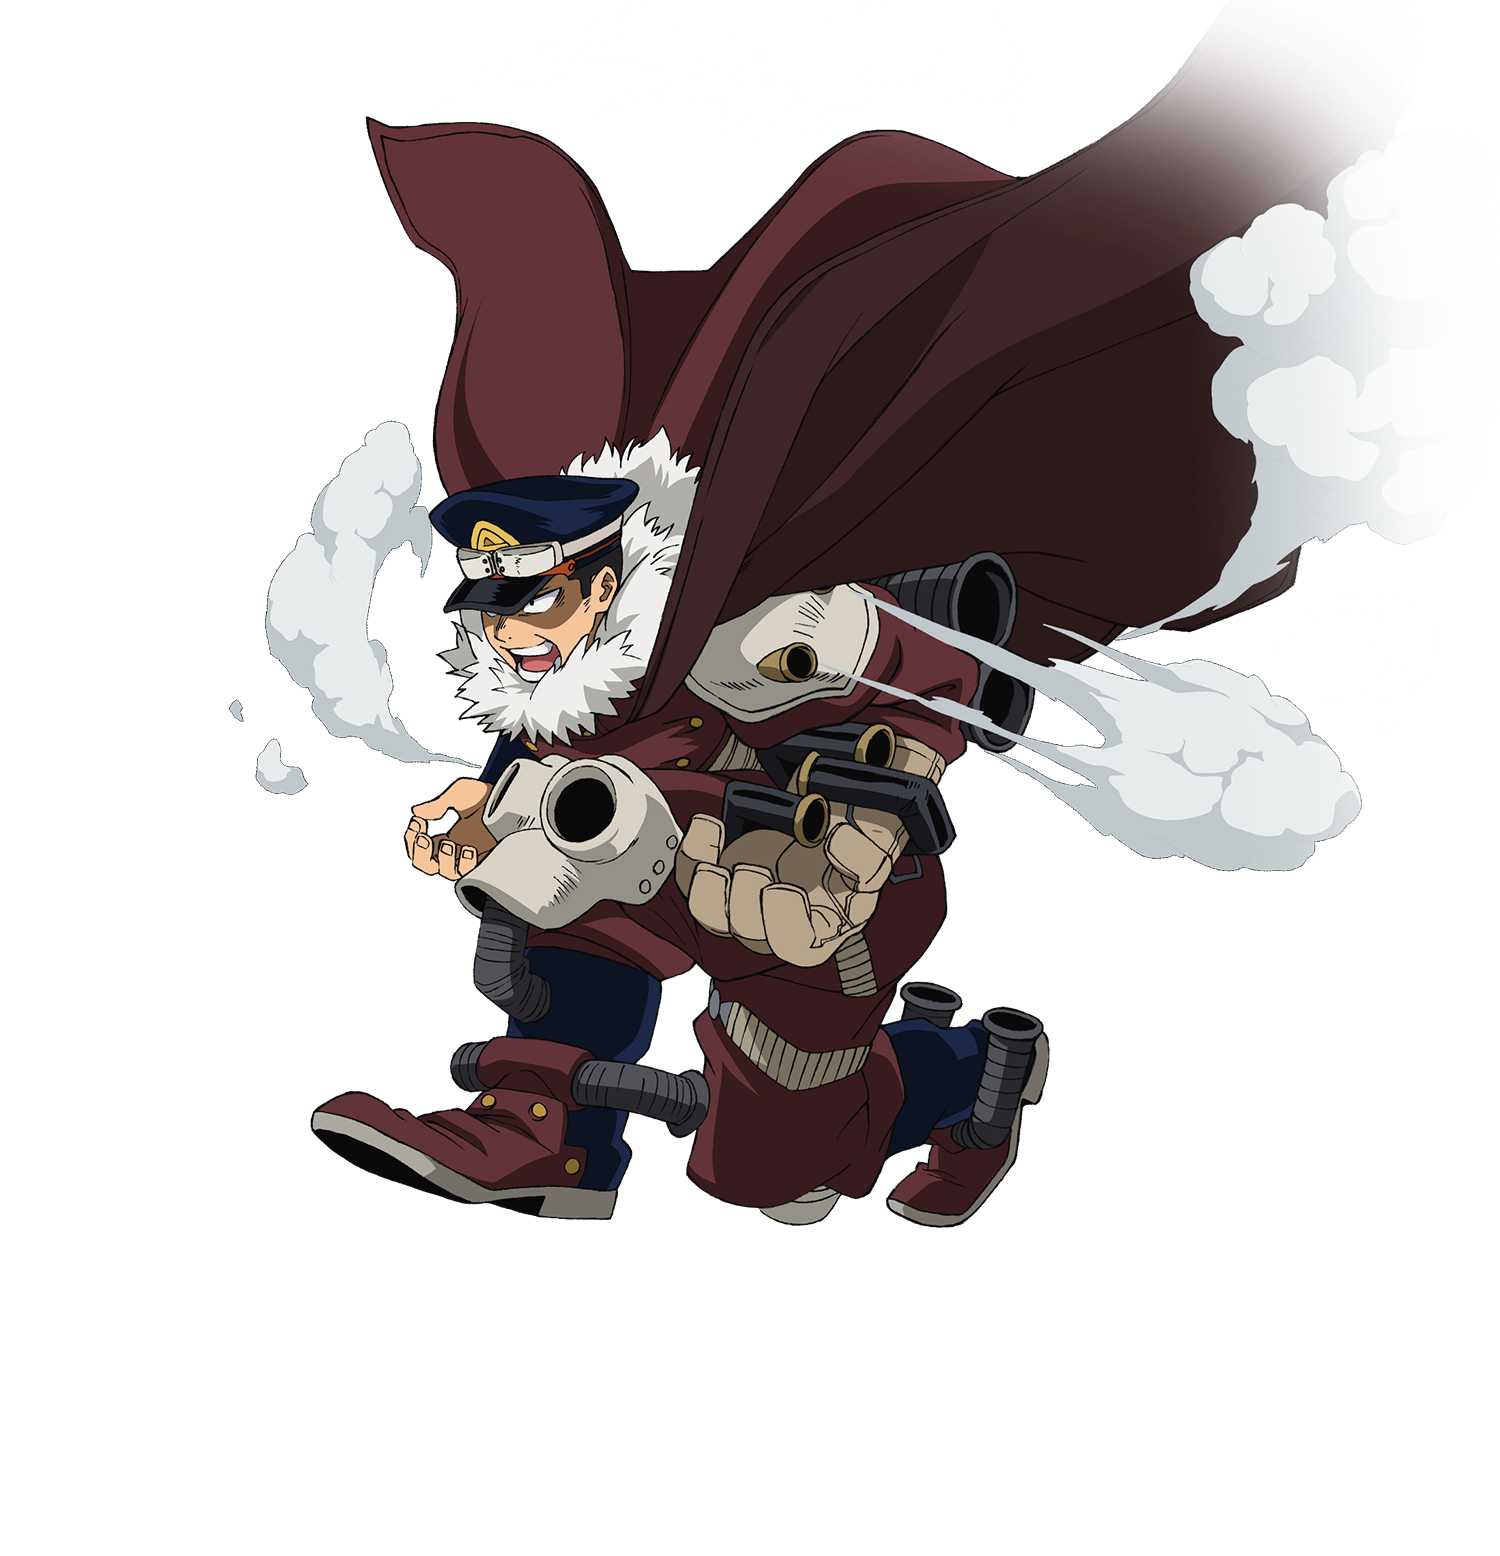 Inasa Yoarashi - Gale Force Render (My Hero One's Justice 2).png